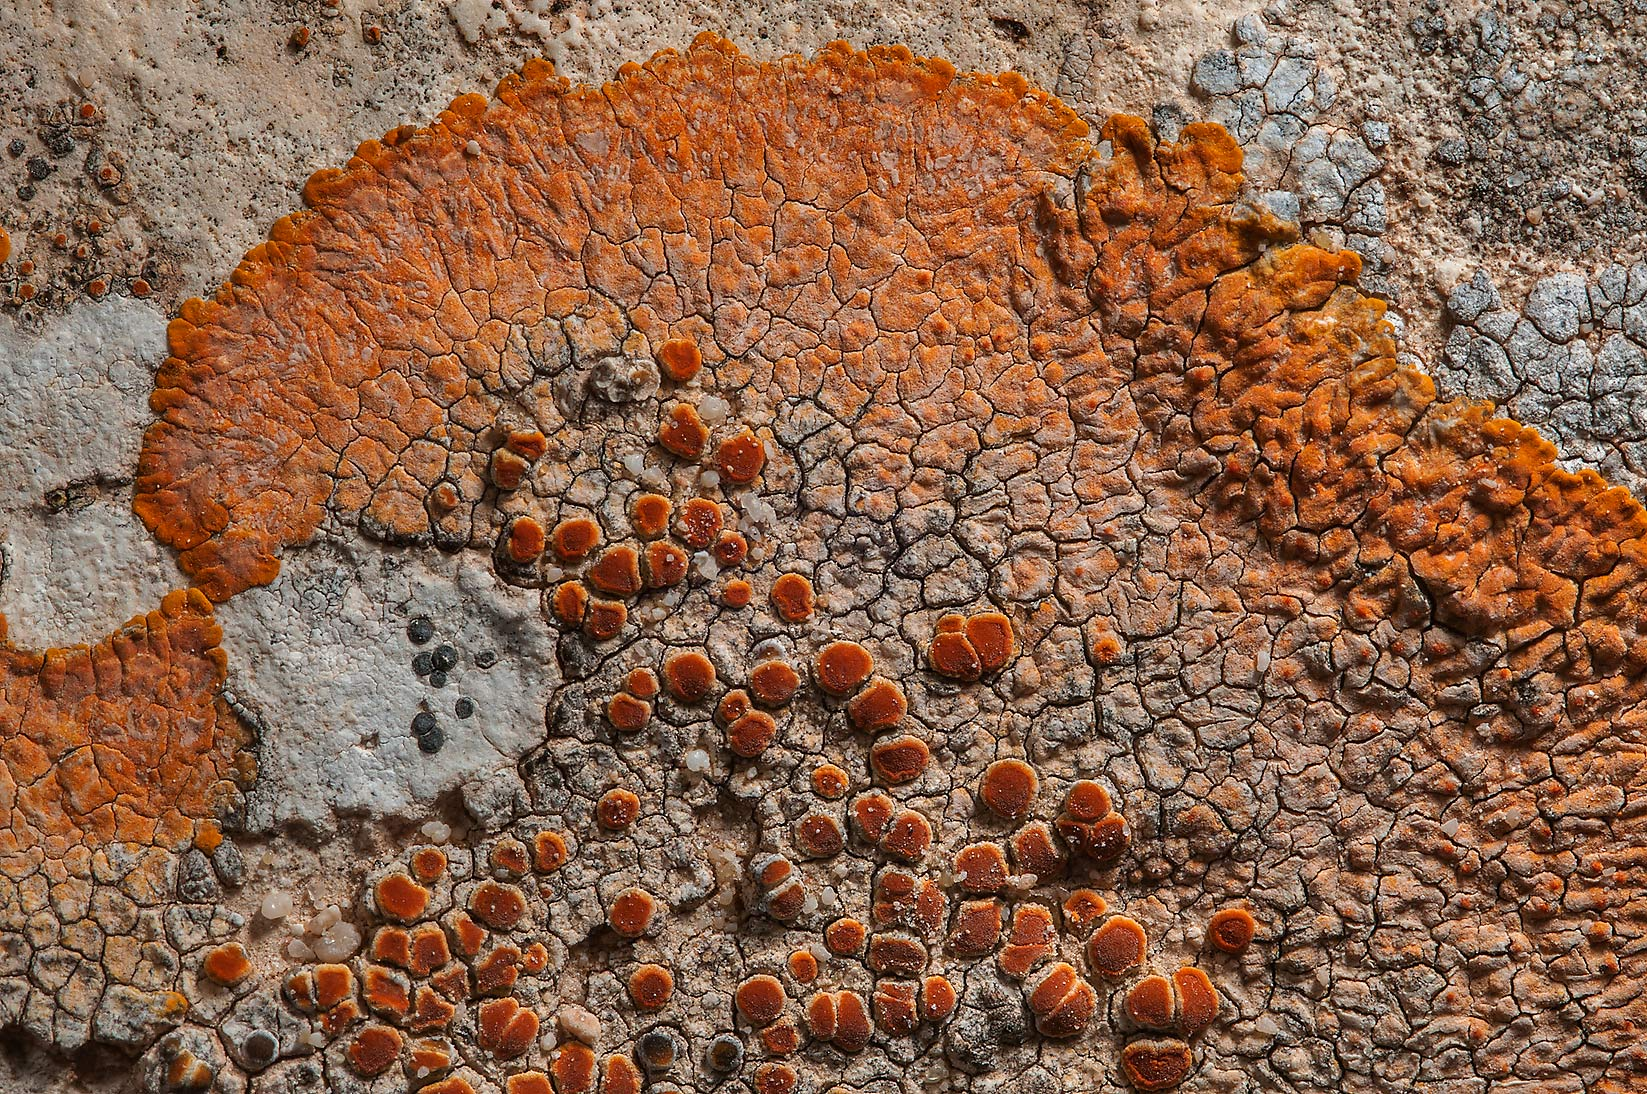 Crustose lichen Caloplaca aurantia with orange...of Ras Laffan, north from Doha. Qatar